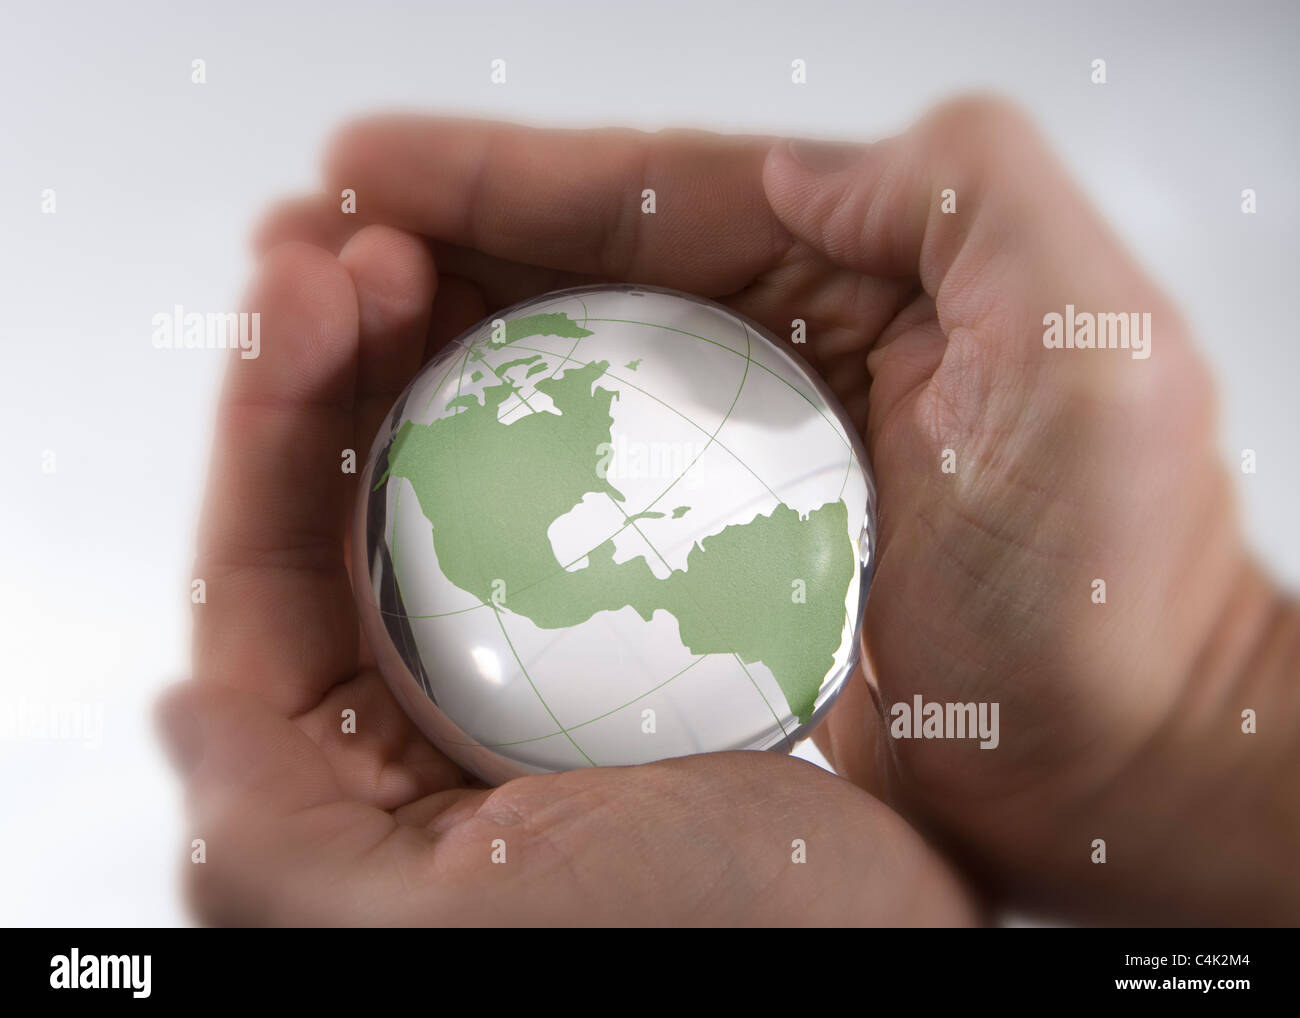 A man cradles a glass model of the earth in his hands. - Stock Image